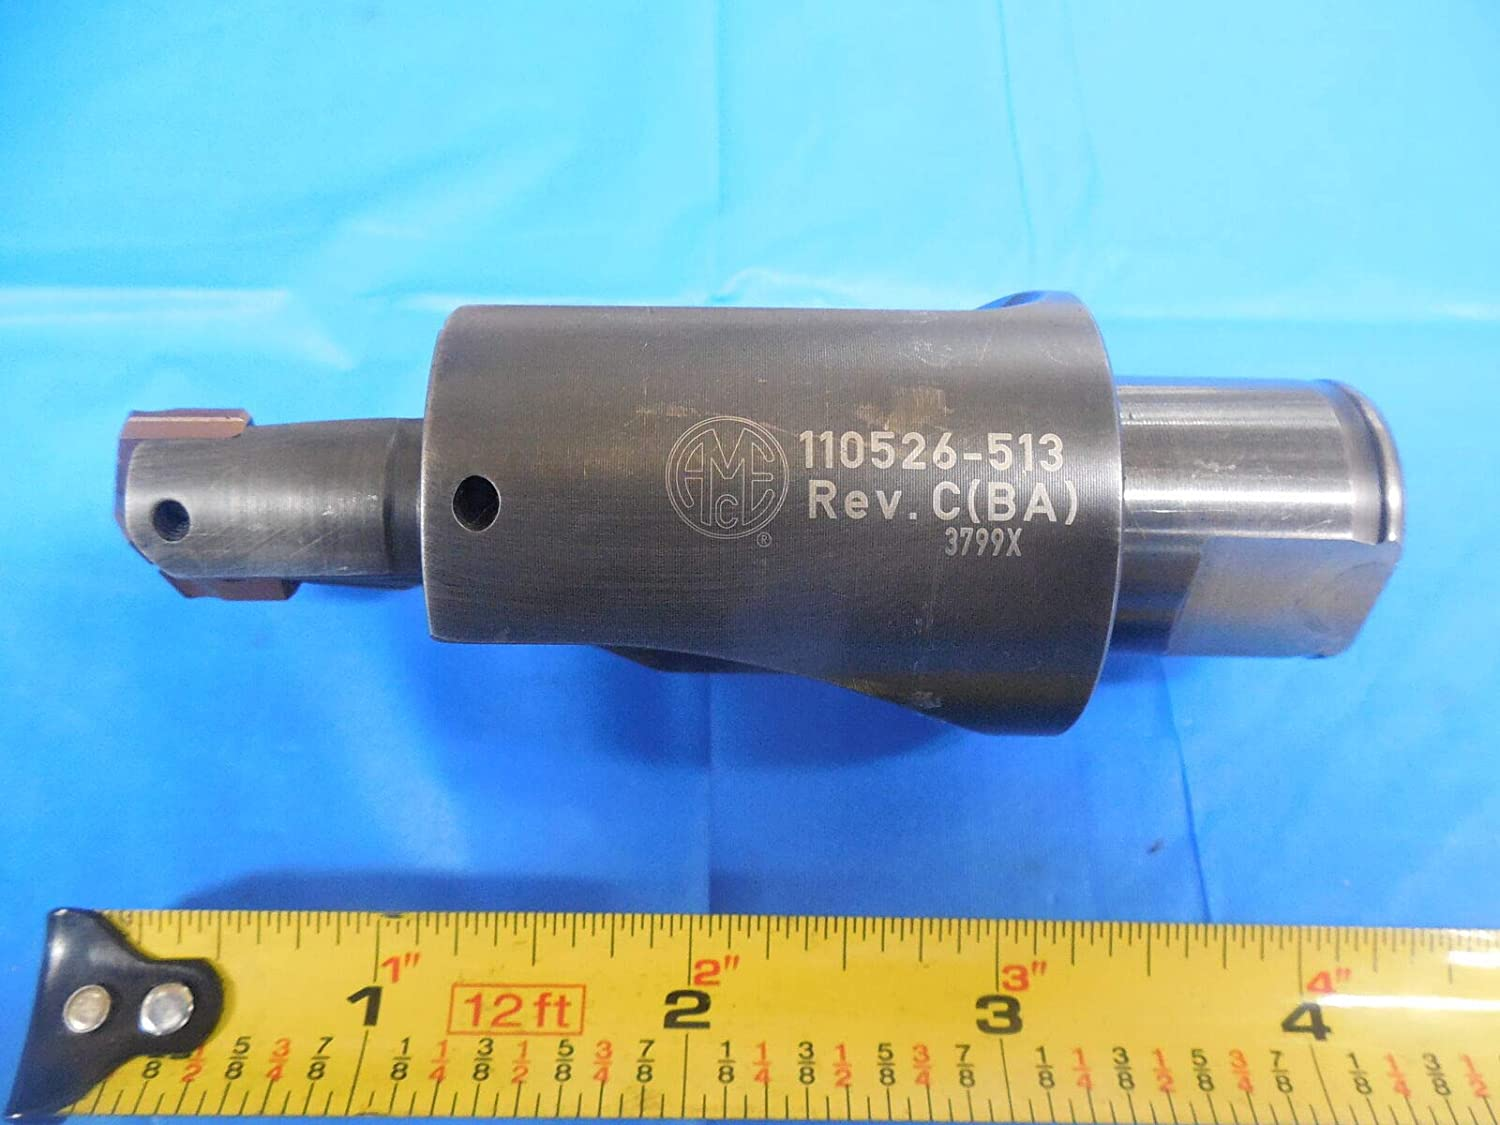 3//4 Insert in IT 1.0 .750 AMEC 1 Shank Spade Drill//Counterbore with 19mm